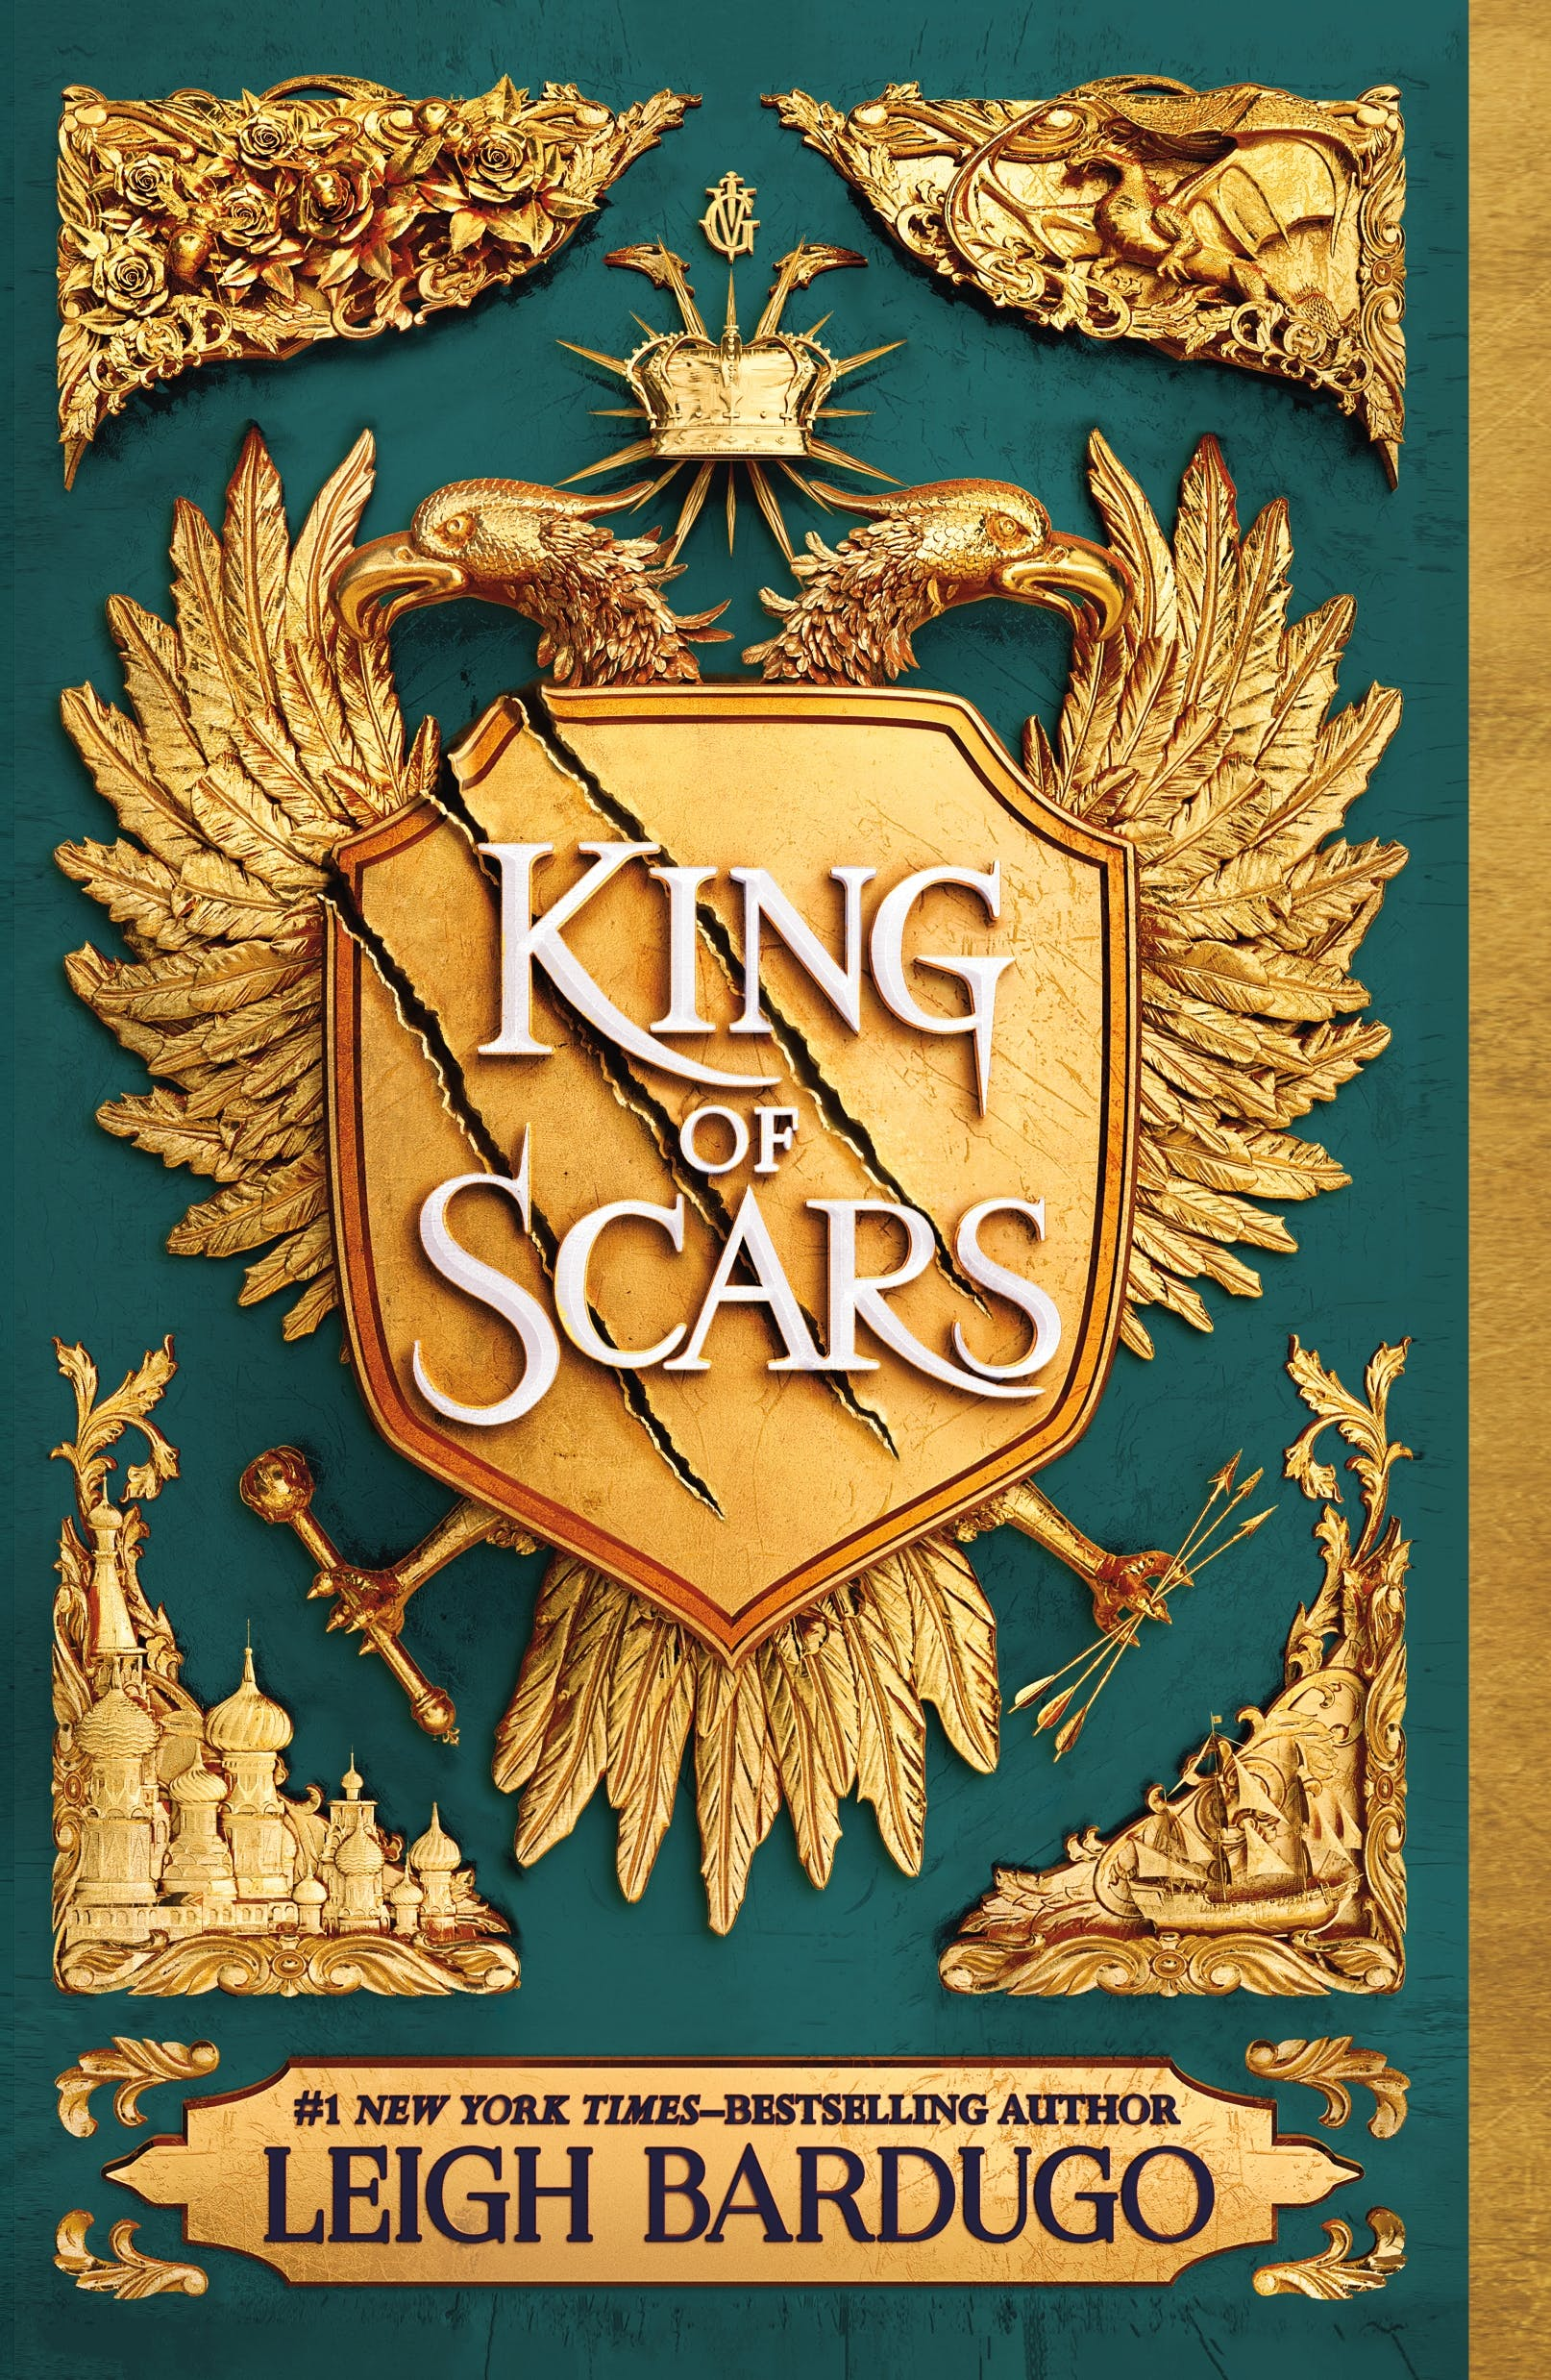 Image of King of Scars